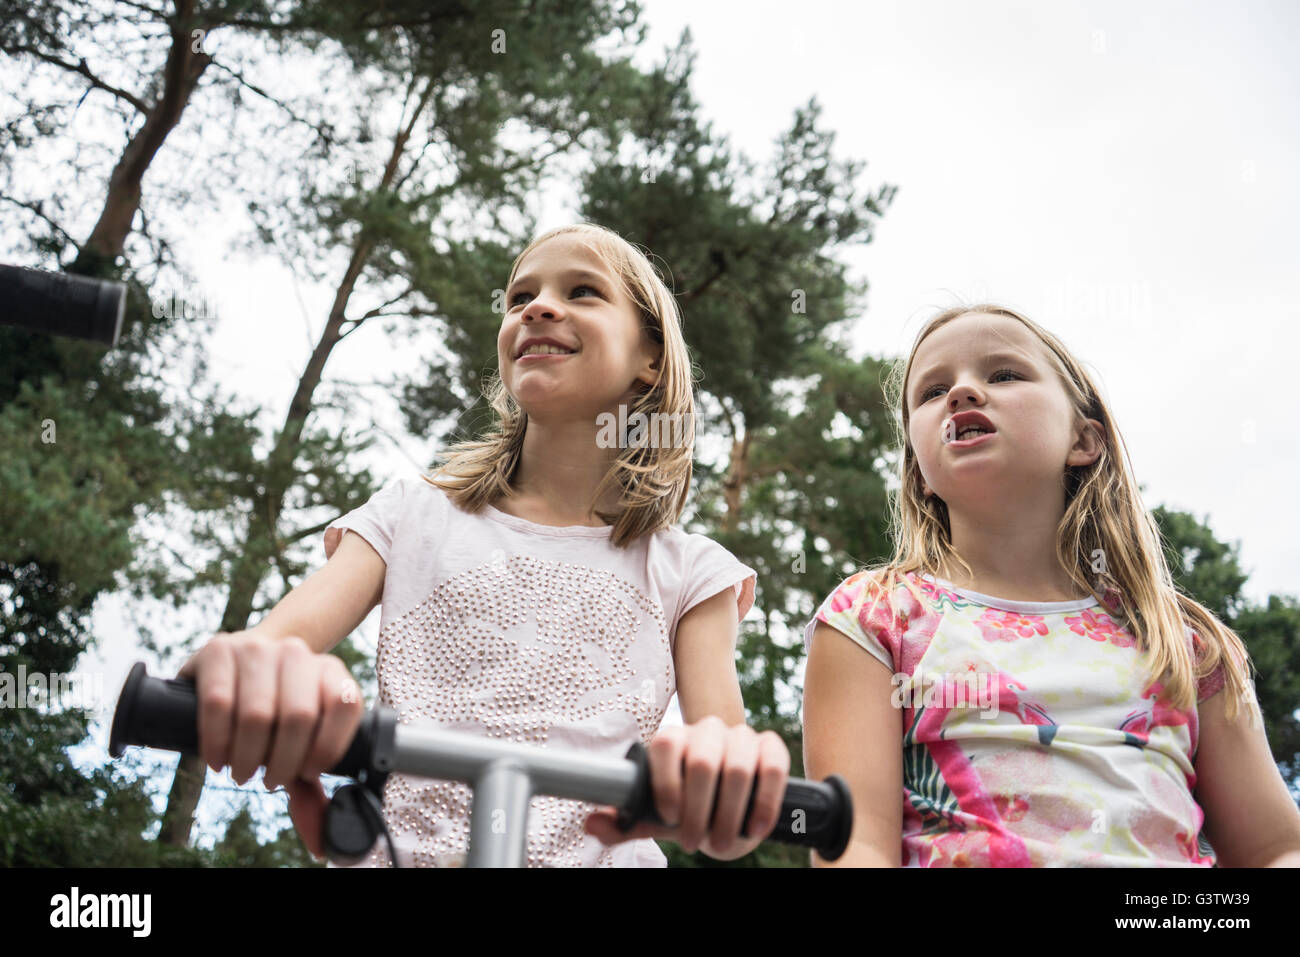 Looking up at two ten year old girls playing on a scooter outside. - Stock Image